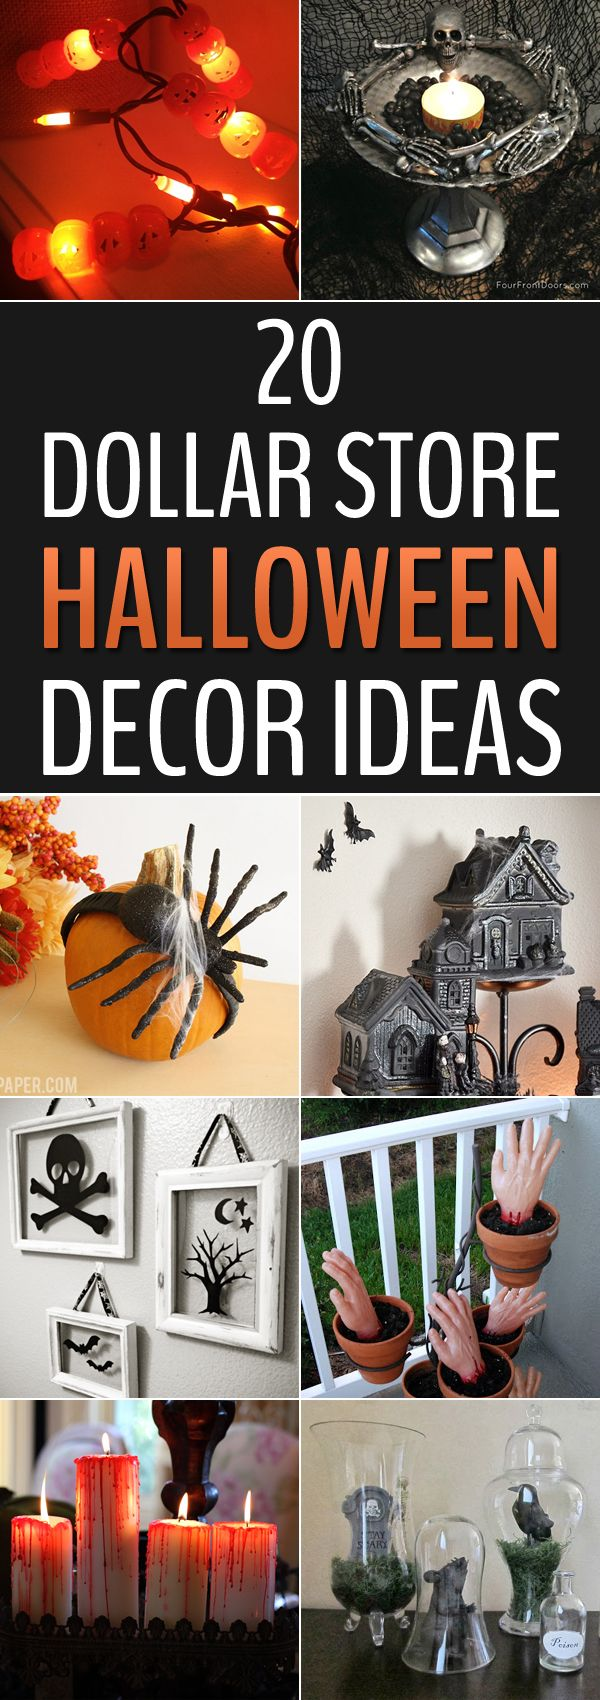 20 dollar store halloween decor ideas more